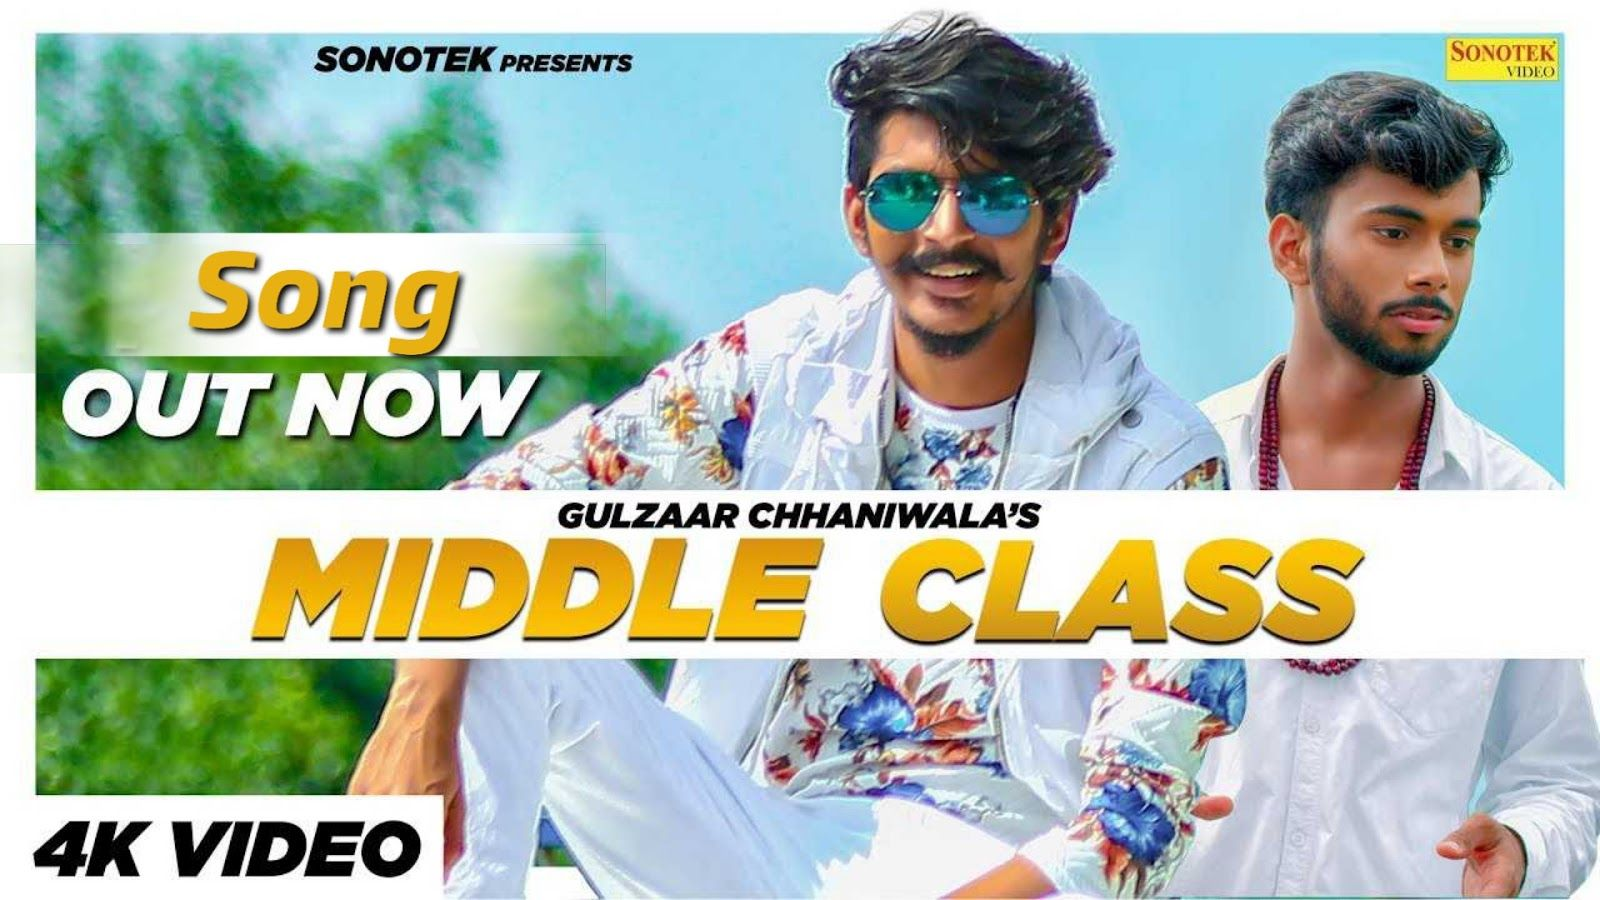 Middle Class Songs Latest Song Lyrics Songs Website